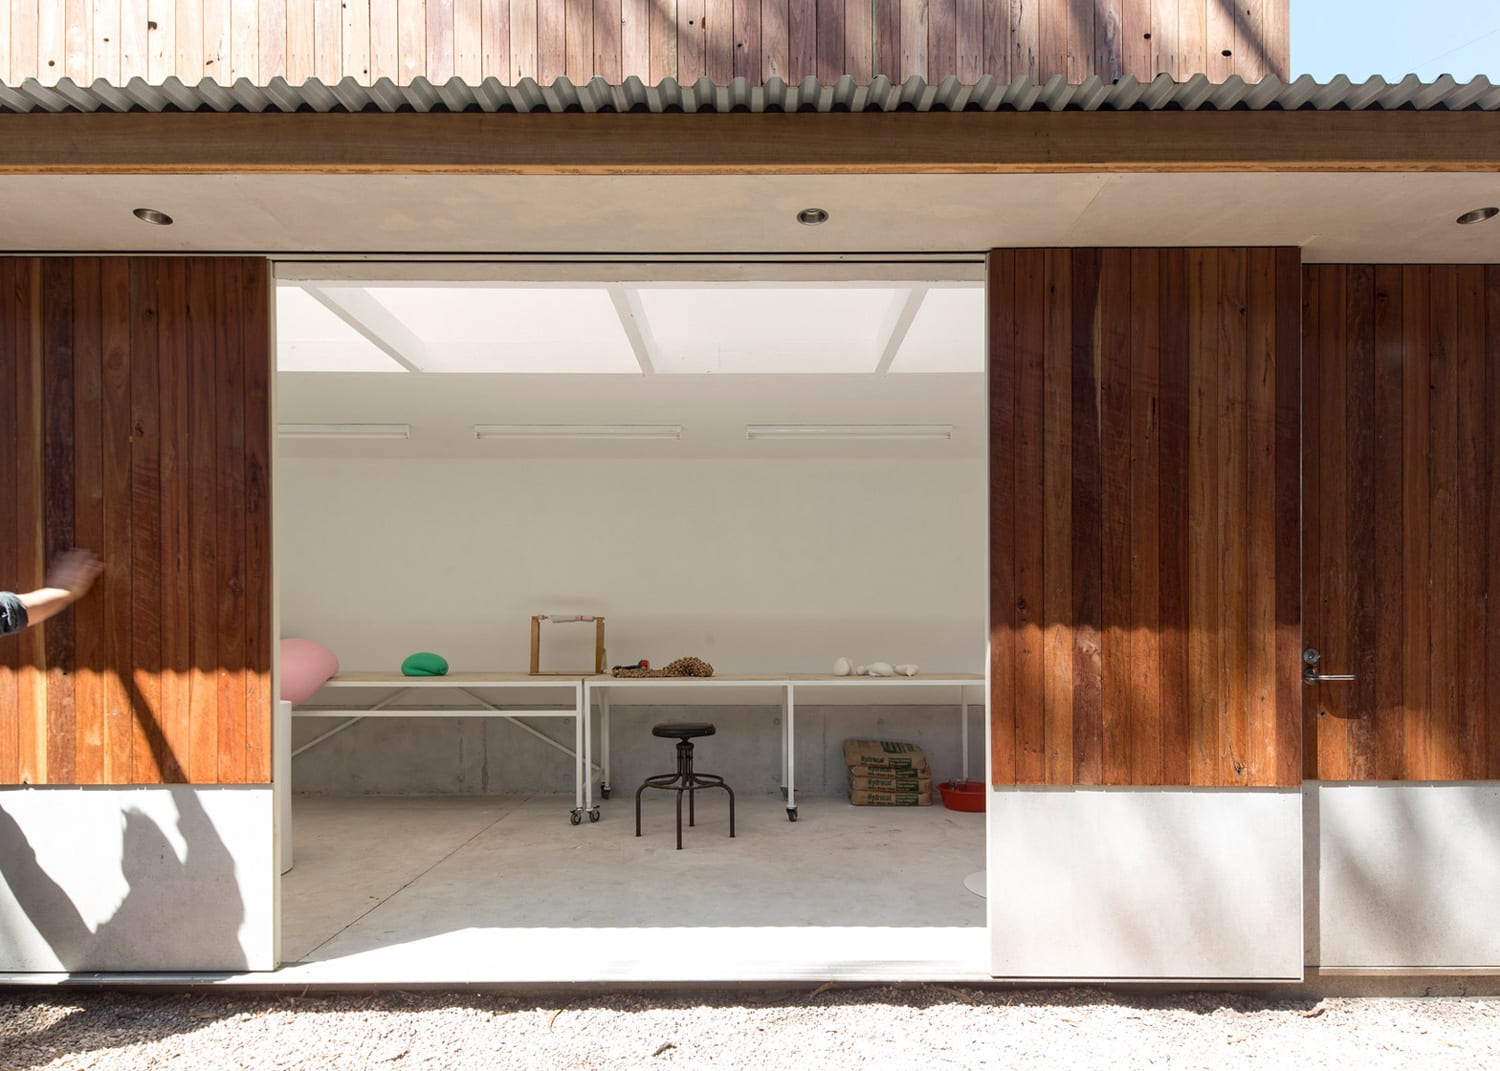 Art Shed/ Garden Gallery, Sydney by panovscott | Yellowtrace